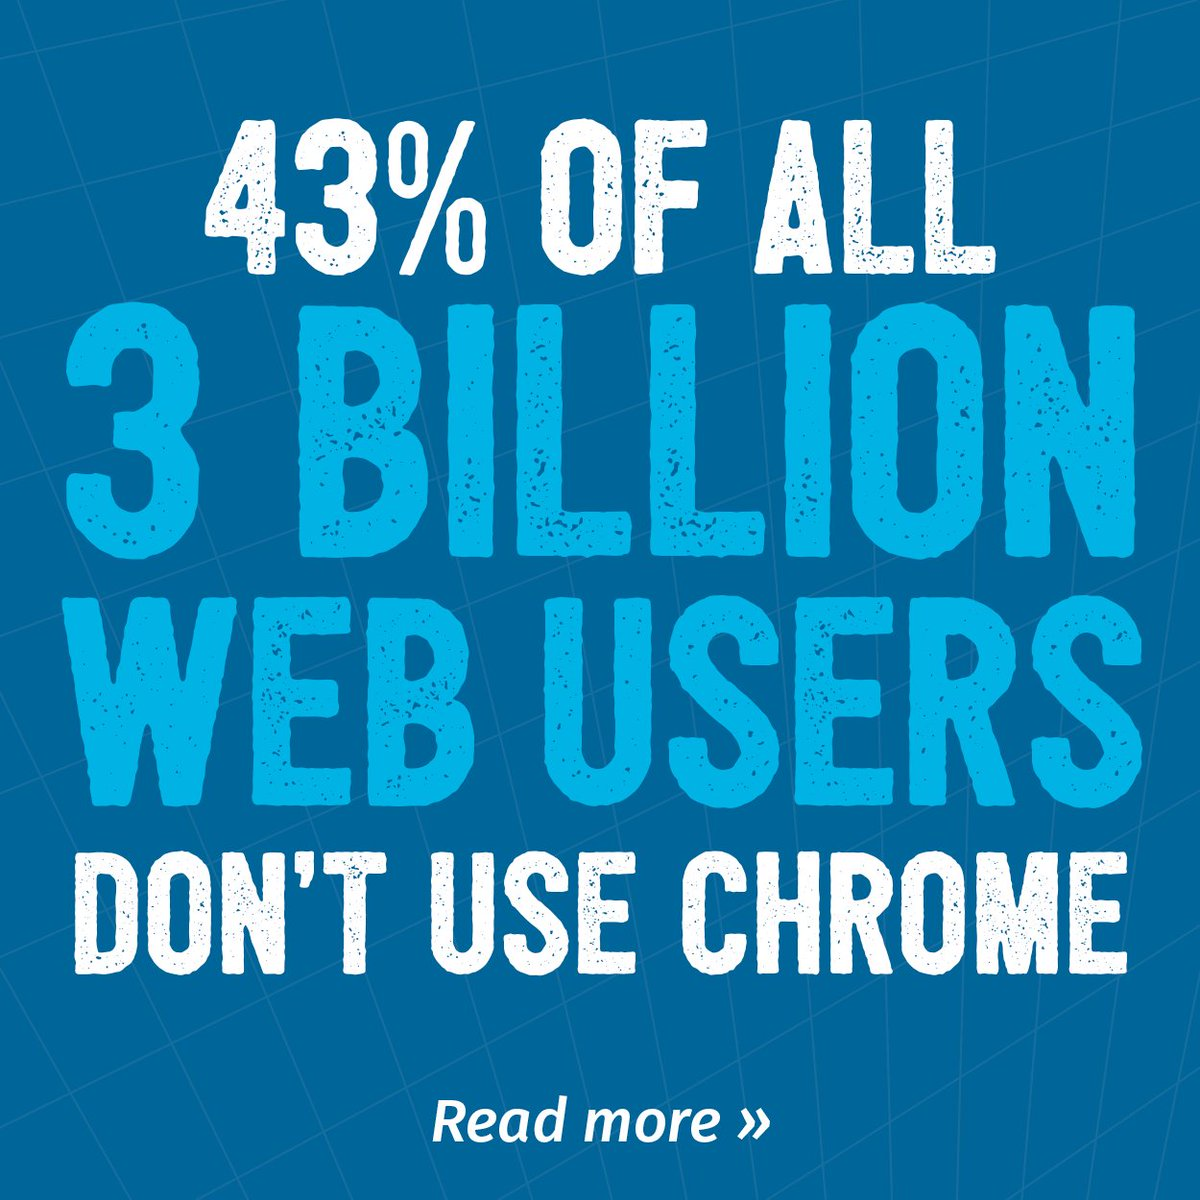 """It works on my machine"" isn't good enough. 43% of your visitors aren't using Chrome. https://t.co/ckVA0HPbAa https://t.co/ArL24MzaYI"